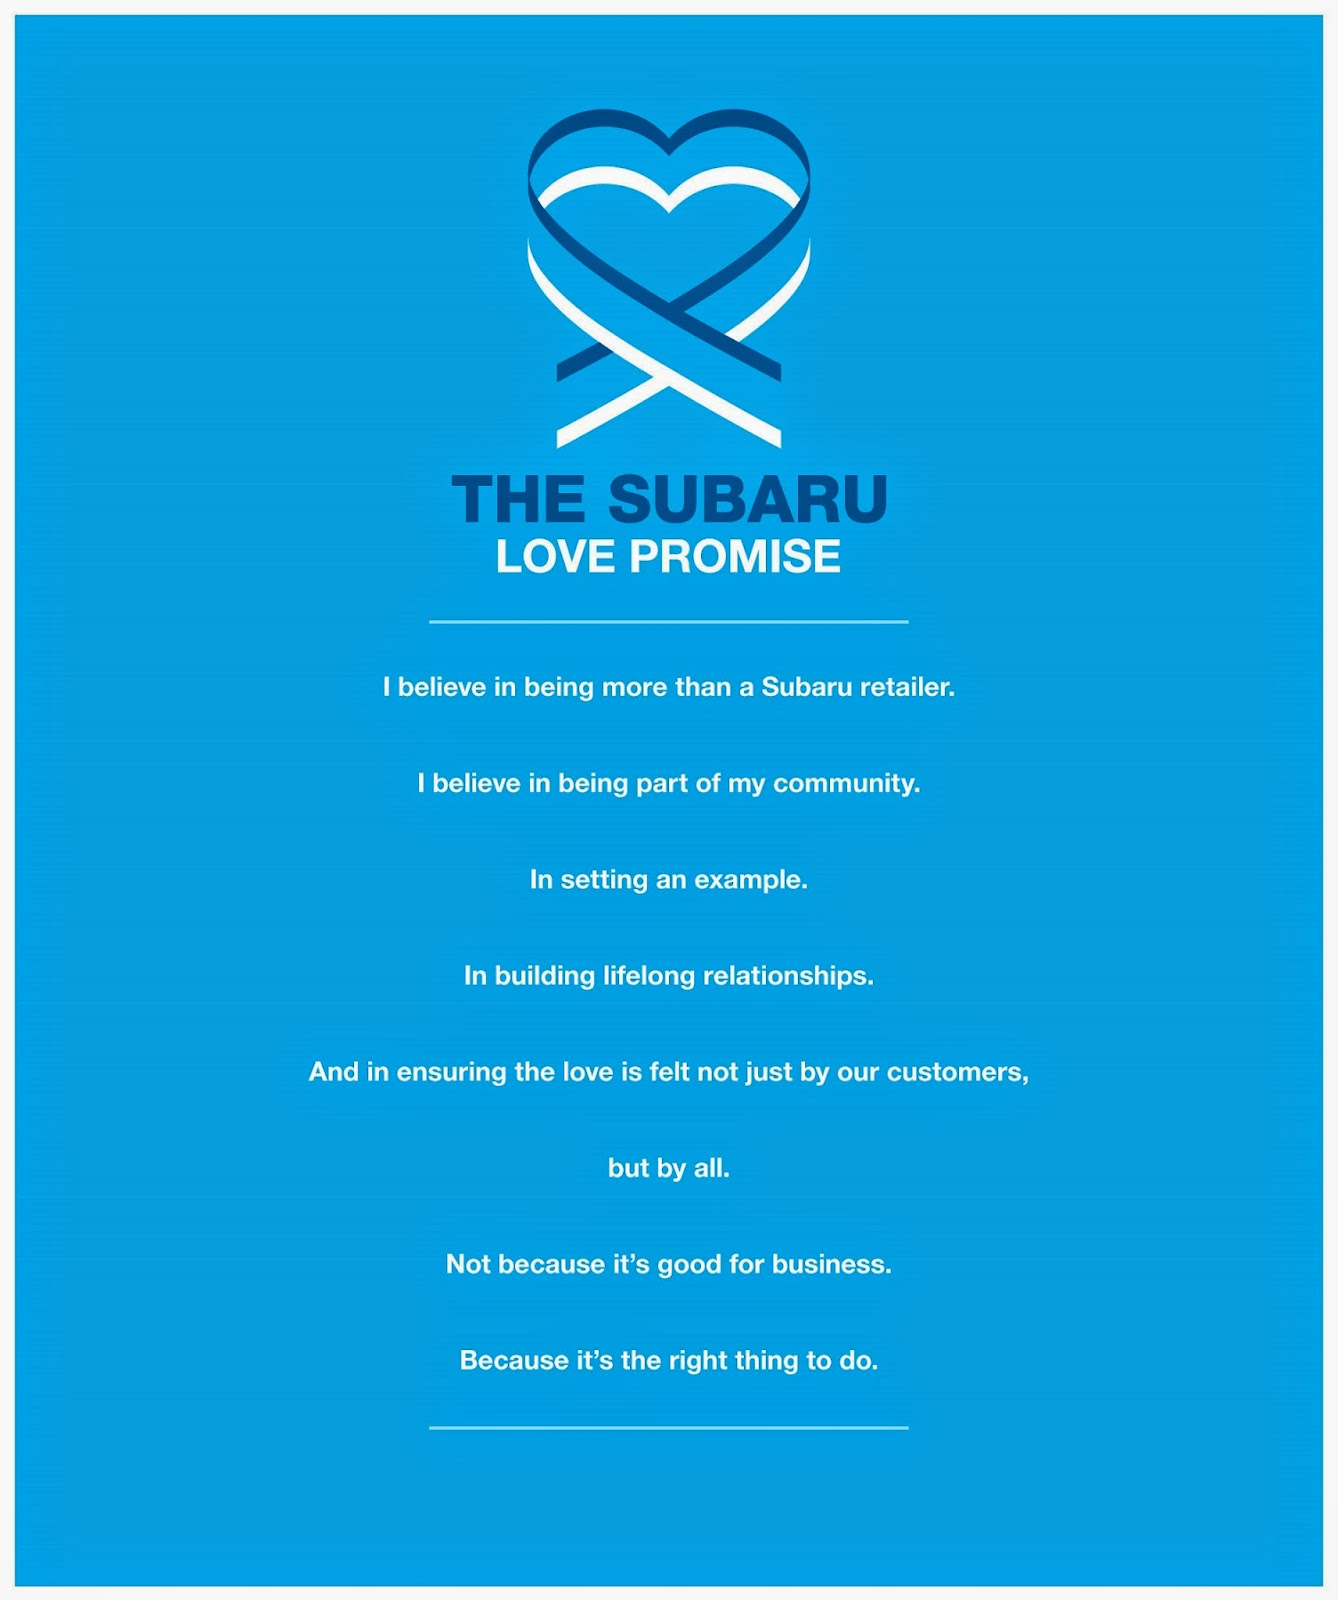 Ferguson Subaru Tulsa >> Ferguson Subaru: Subaru Love Promise | Our Pledge to ...